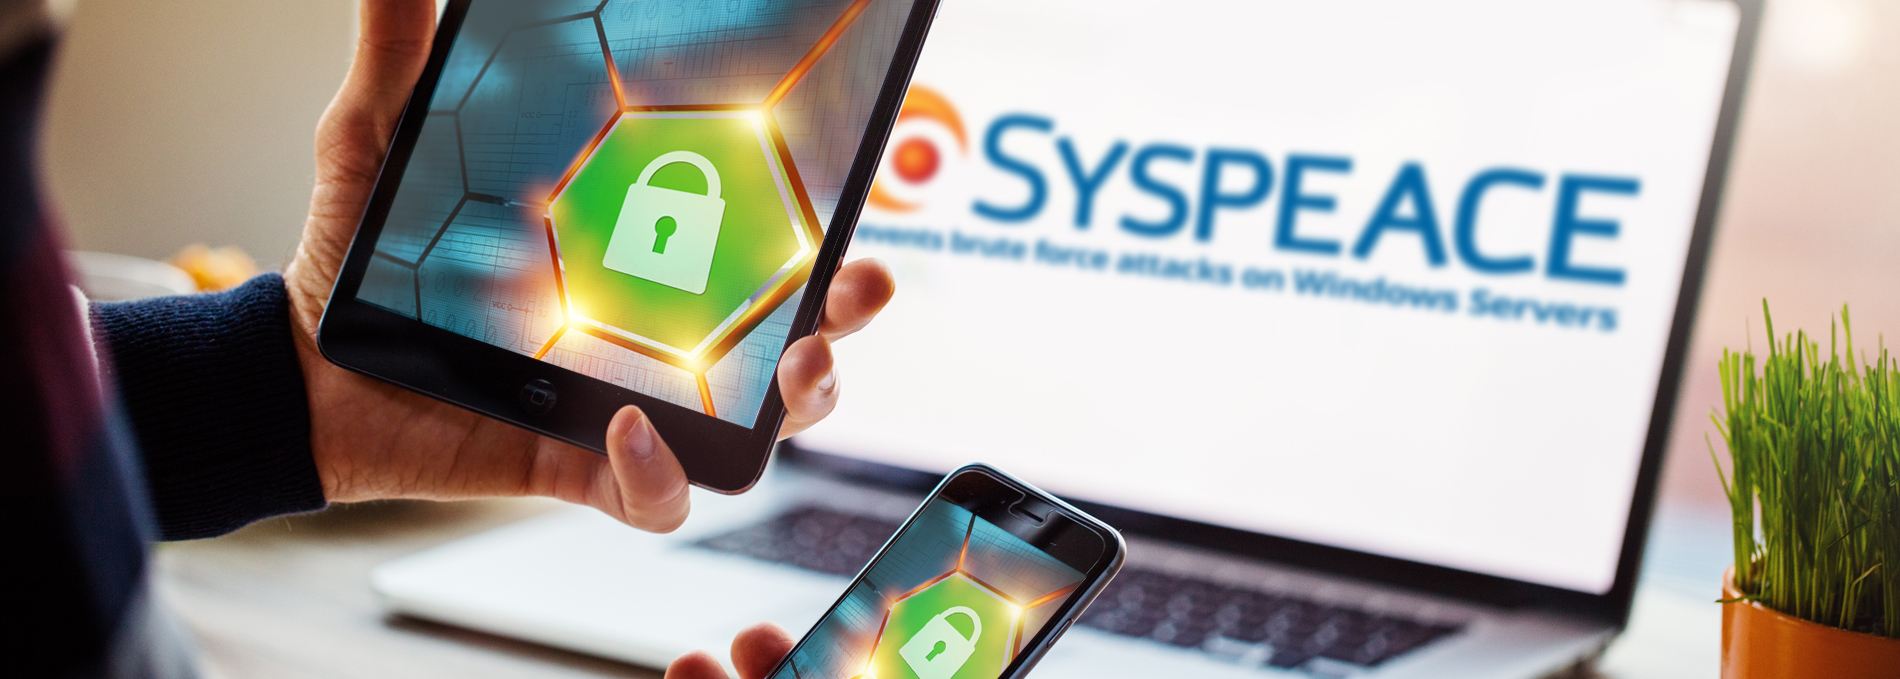 Syspeace Brute Force Protection Internet security for Windows Servers Free support FAQ